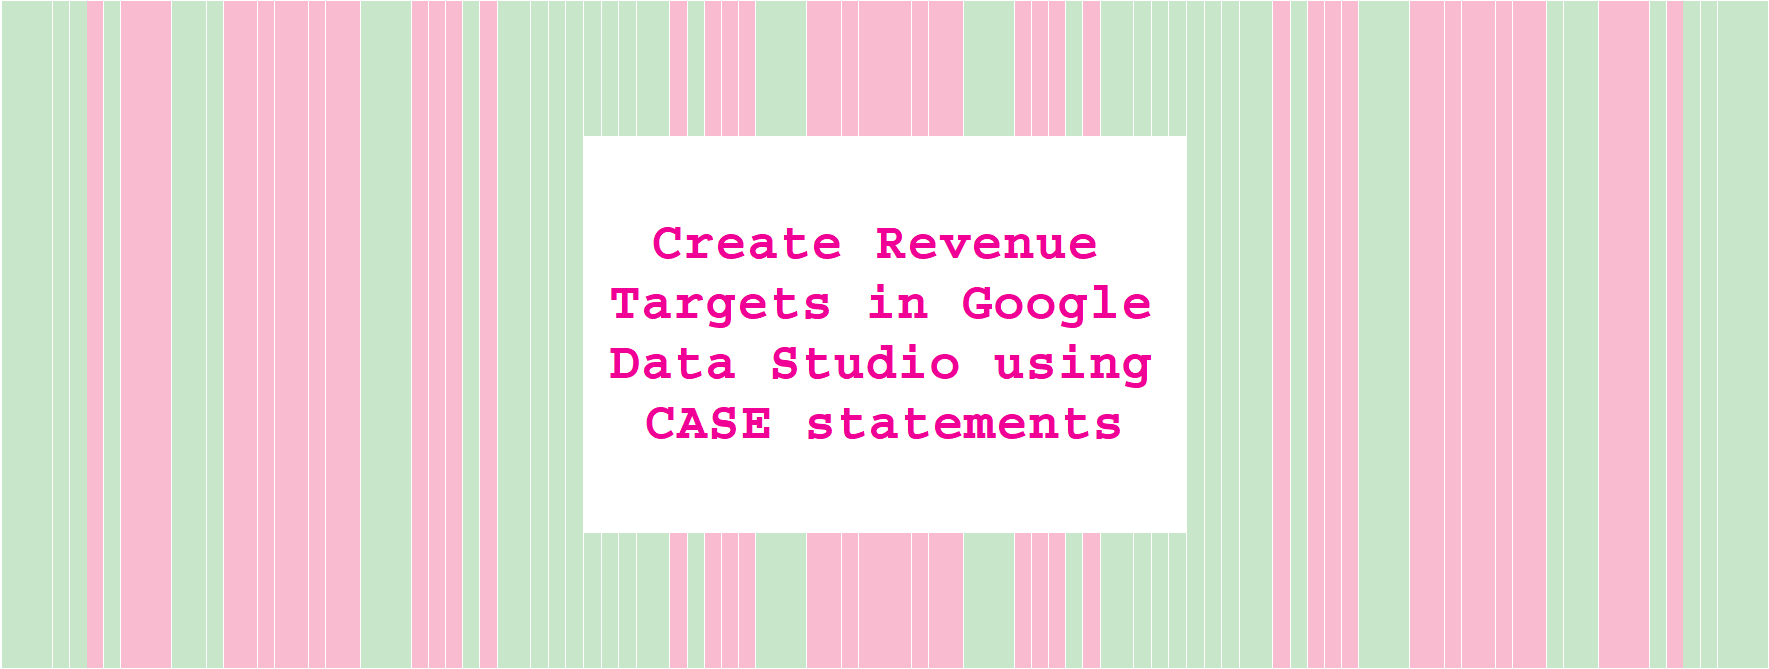 Create Revenue Targets in Google Data Studio using CASE statements